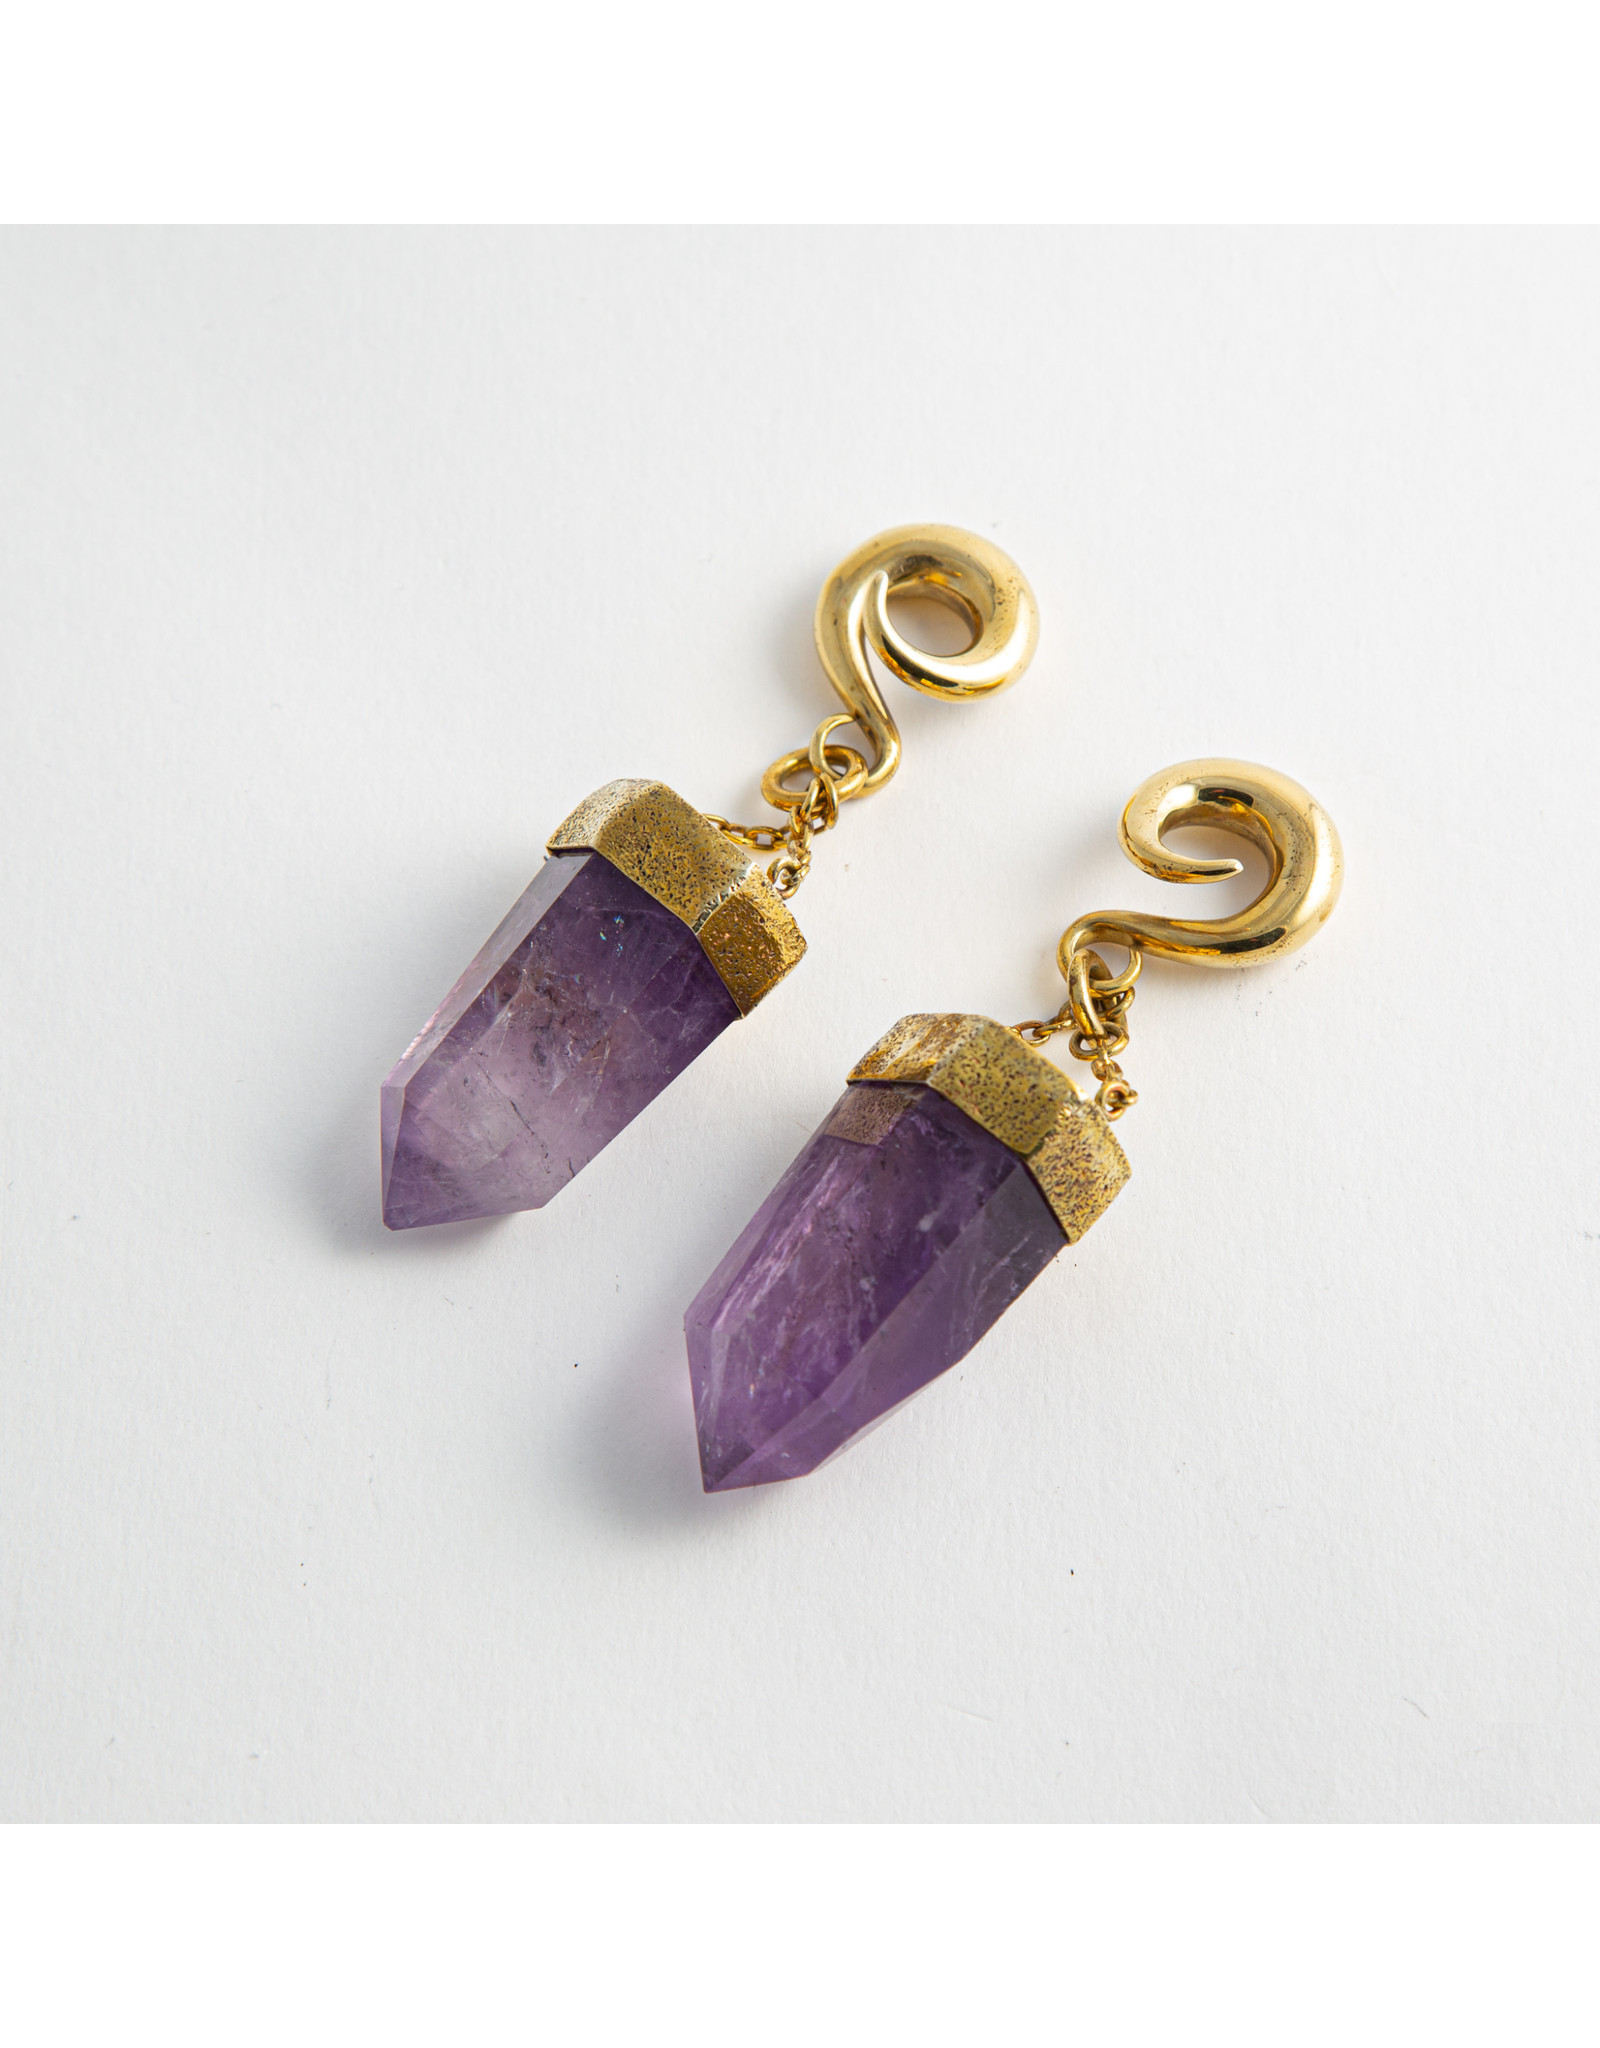 Diablo Organics Diablo Organics brass-set large amethyst crystal on large classic coil